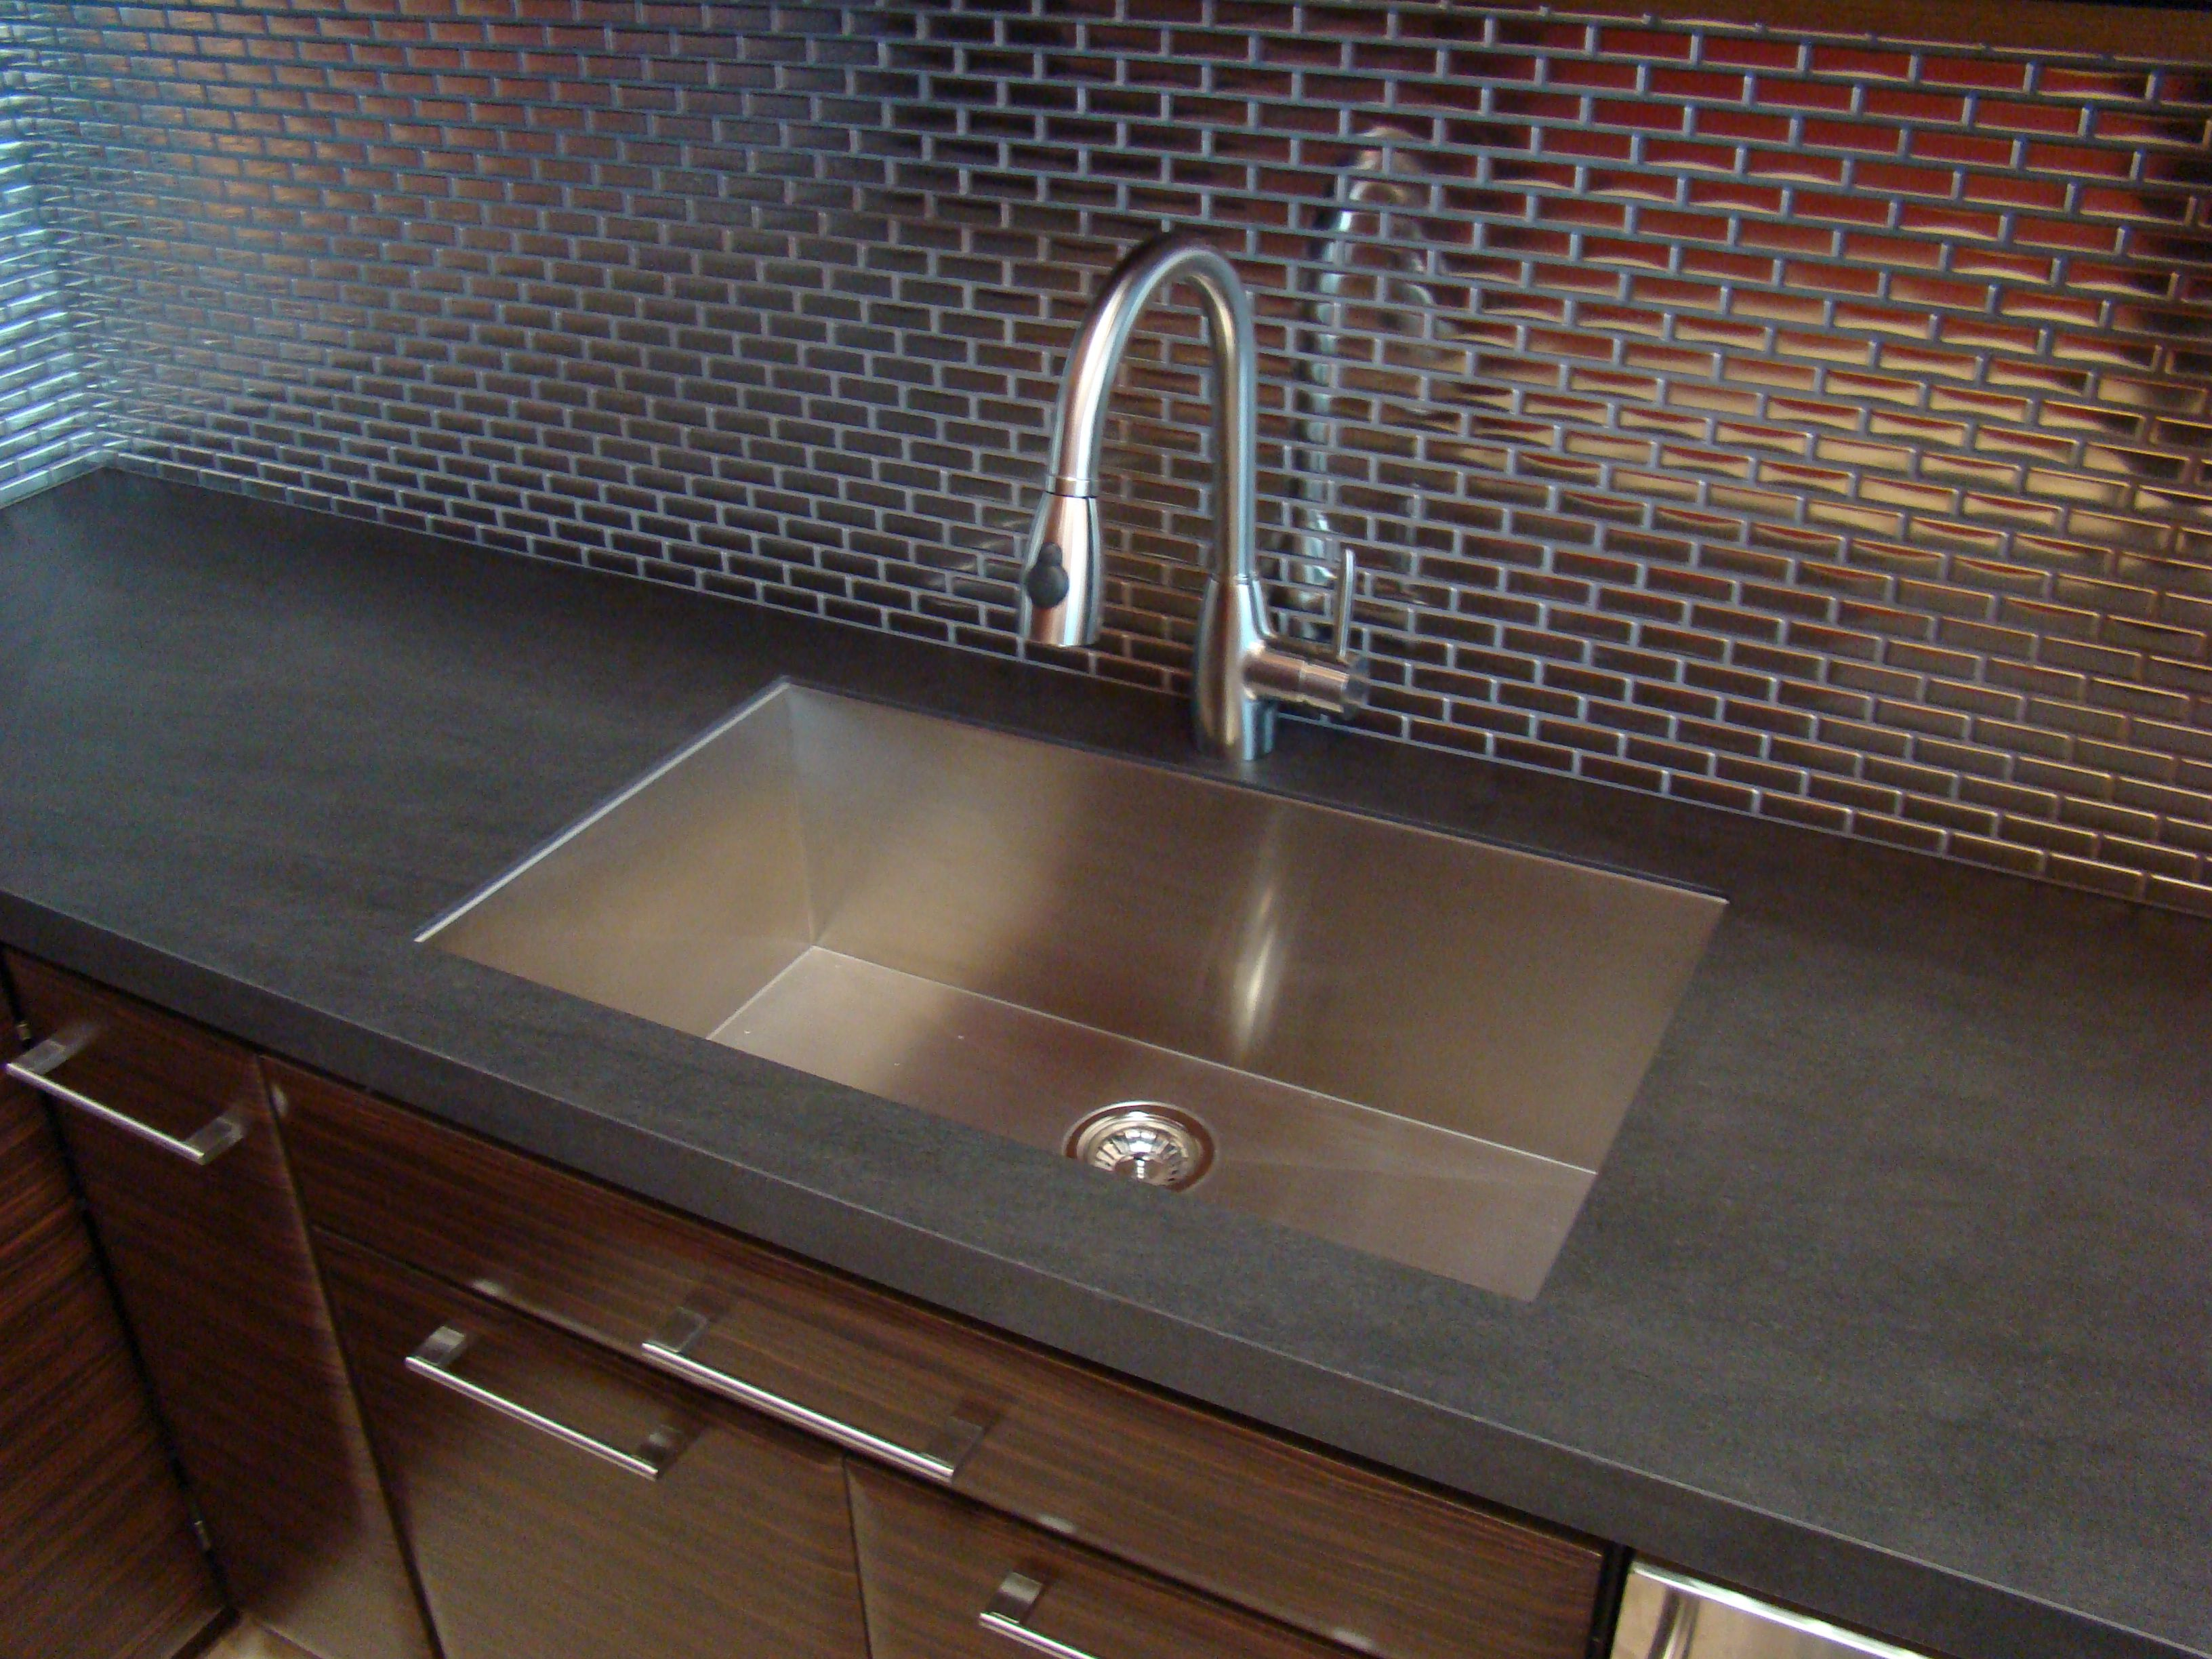 Neolith Basalt Black Kitchen Countertop Countertops